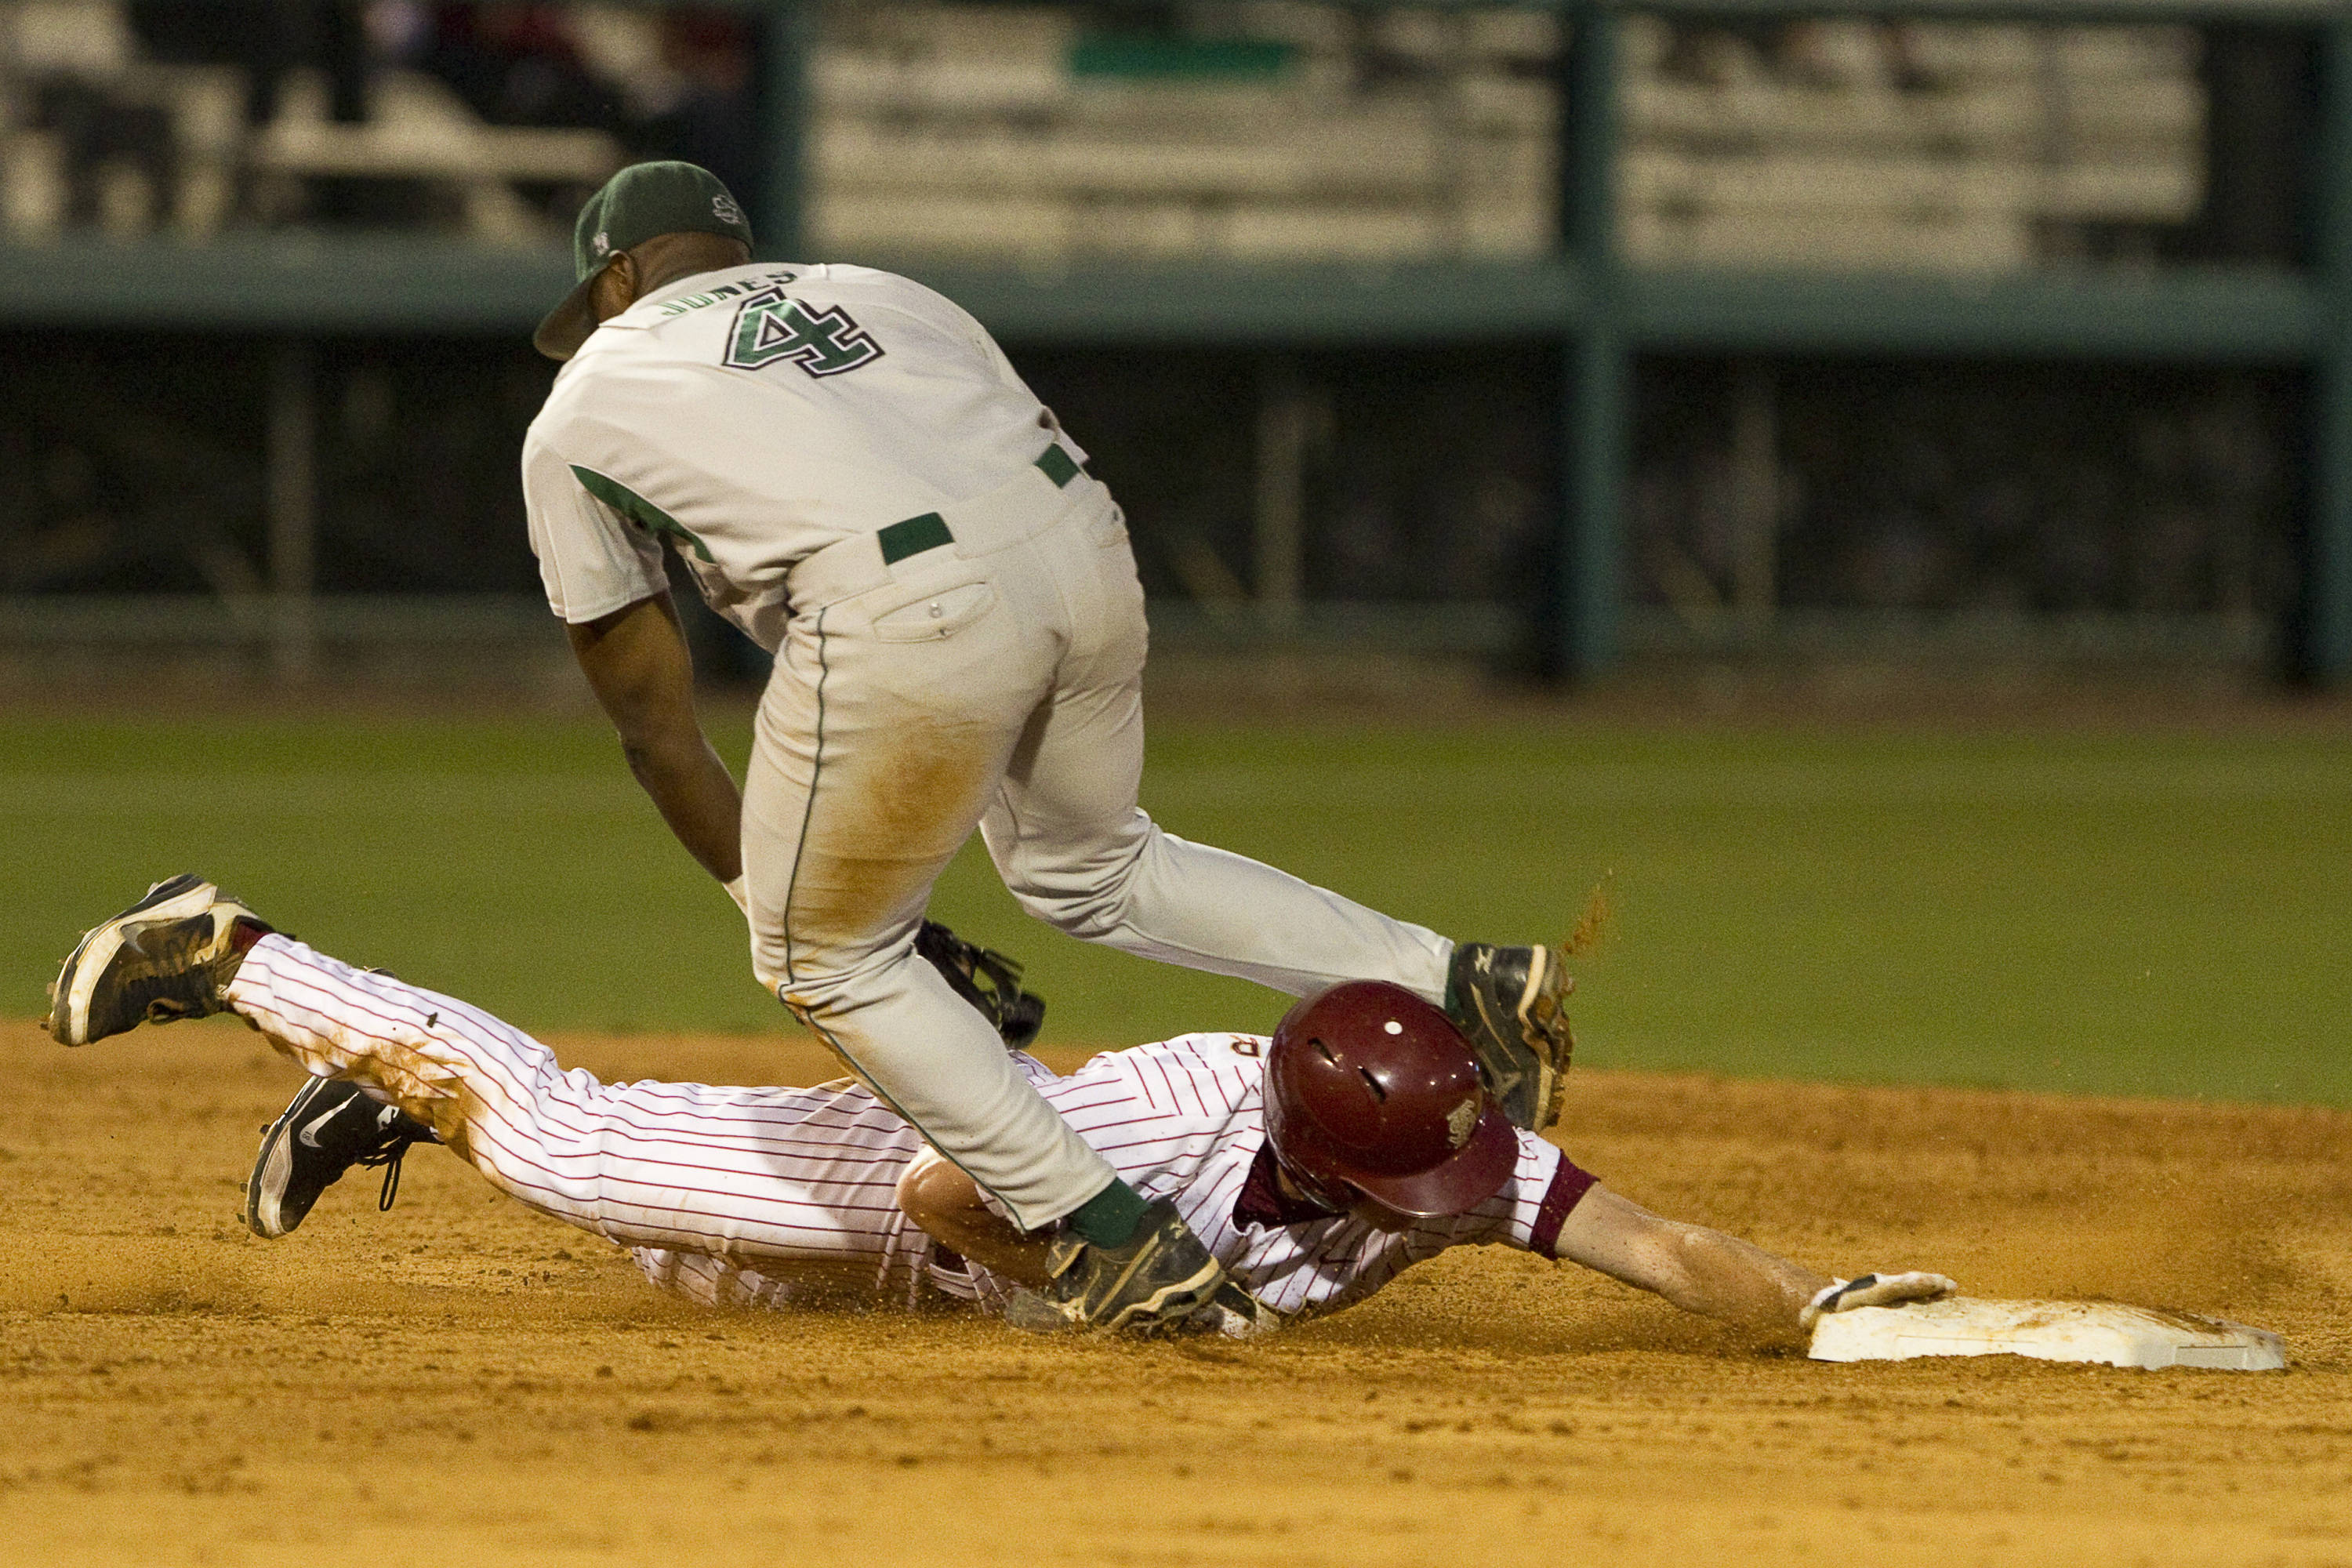 Seth Miller (18) slides under Stetson's second baseman. He was safe.